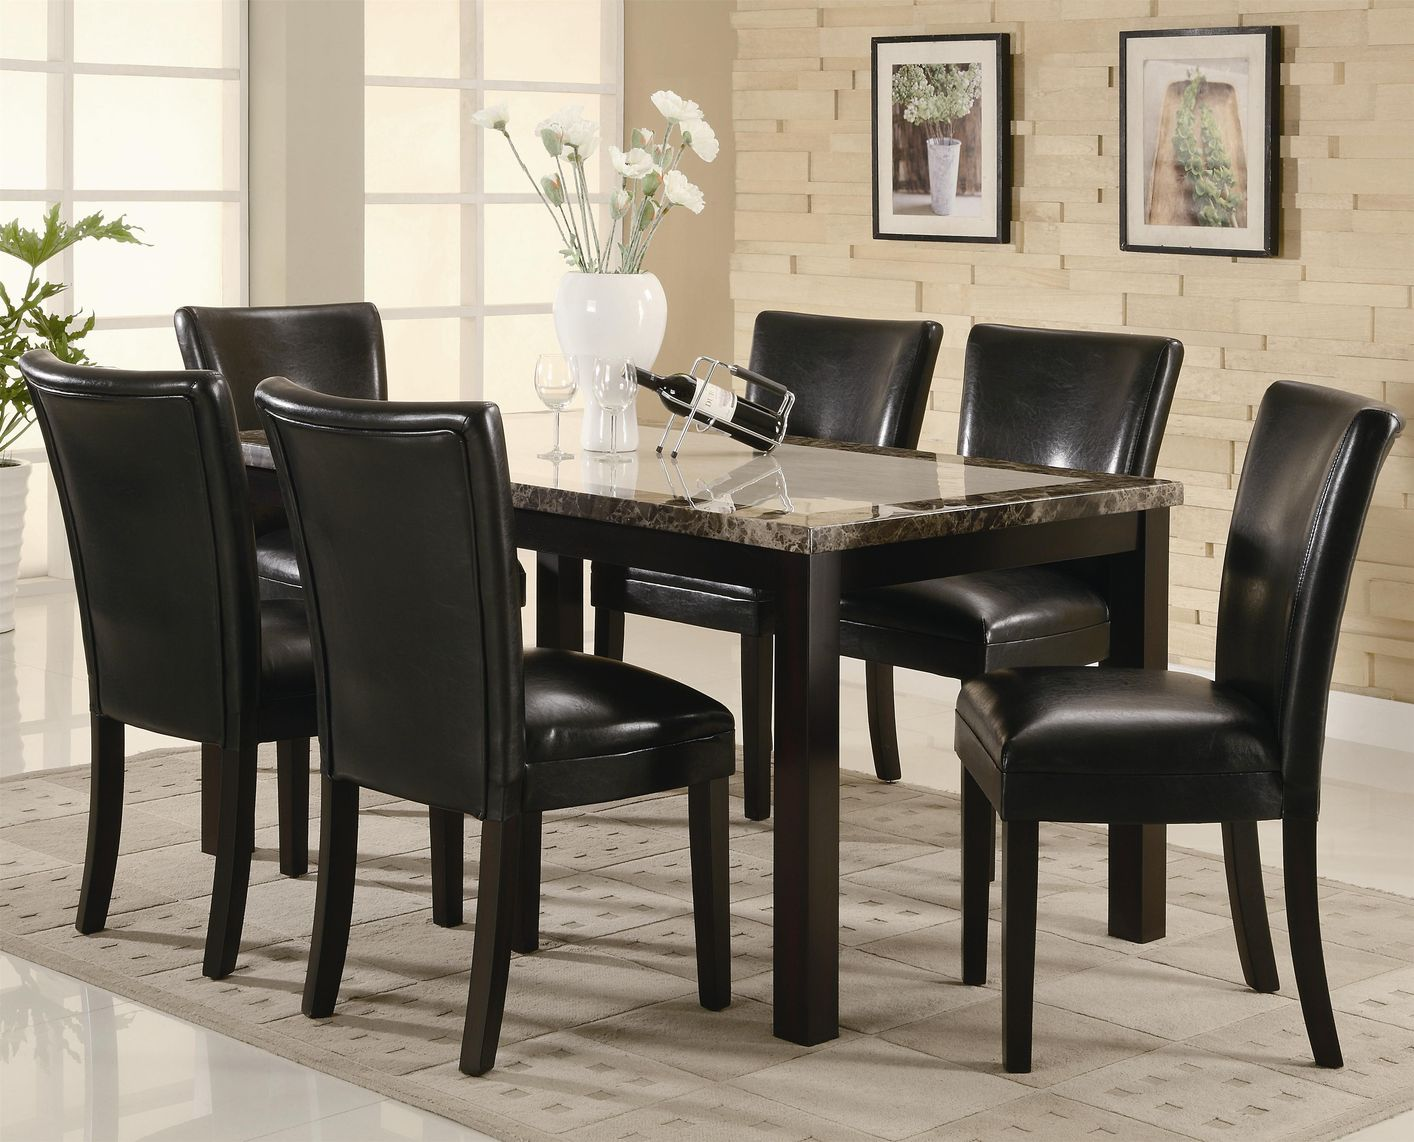 Marble Dining Room Table sets in black